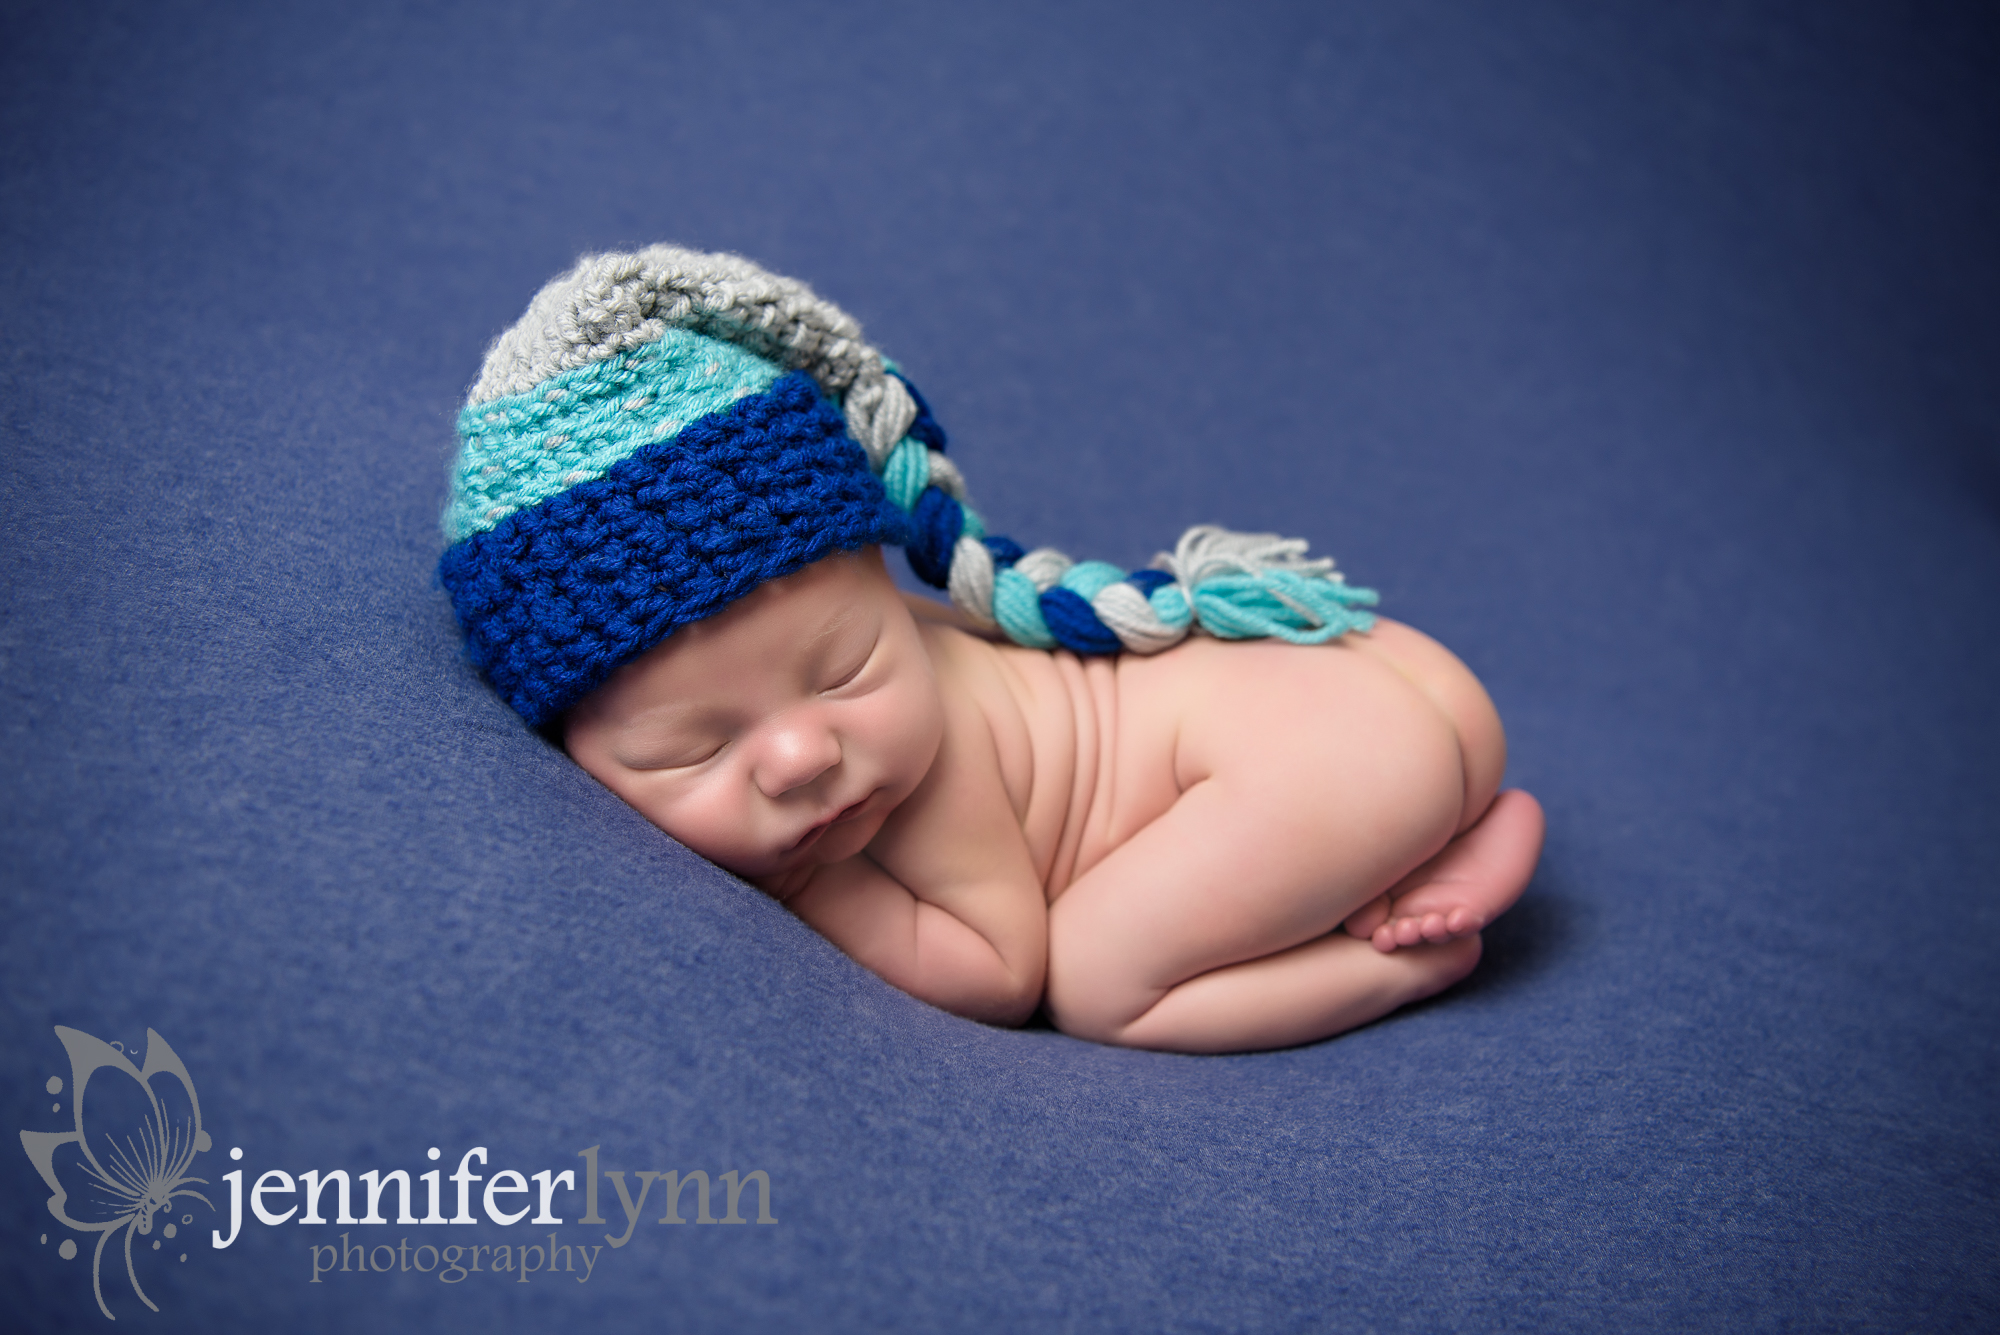 Newborn Boy Tushie Up Blue and Knit Cap